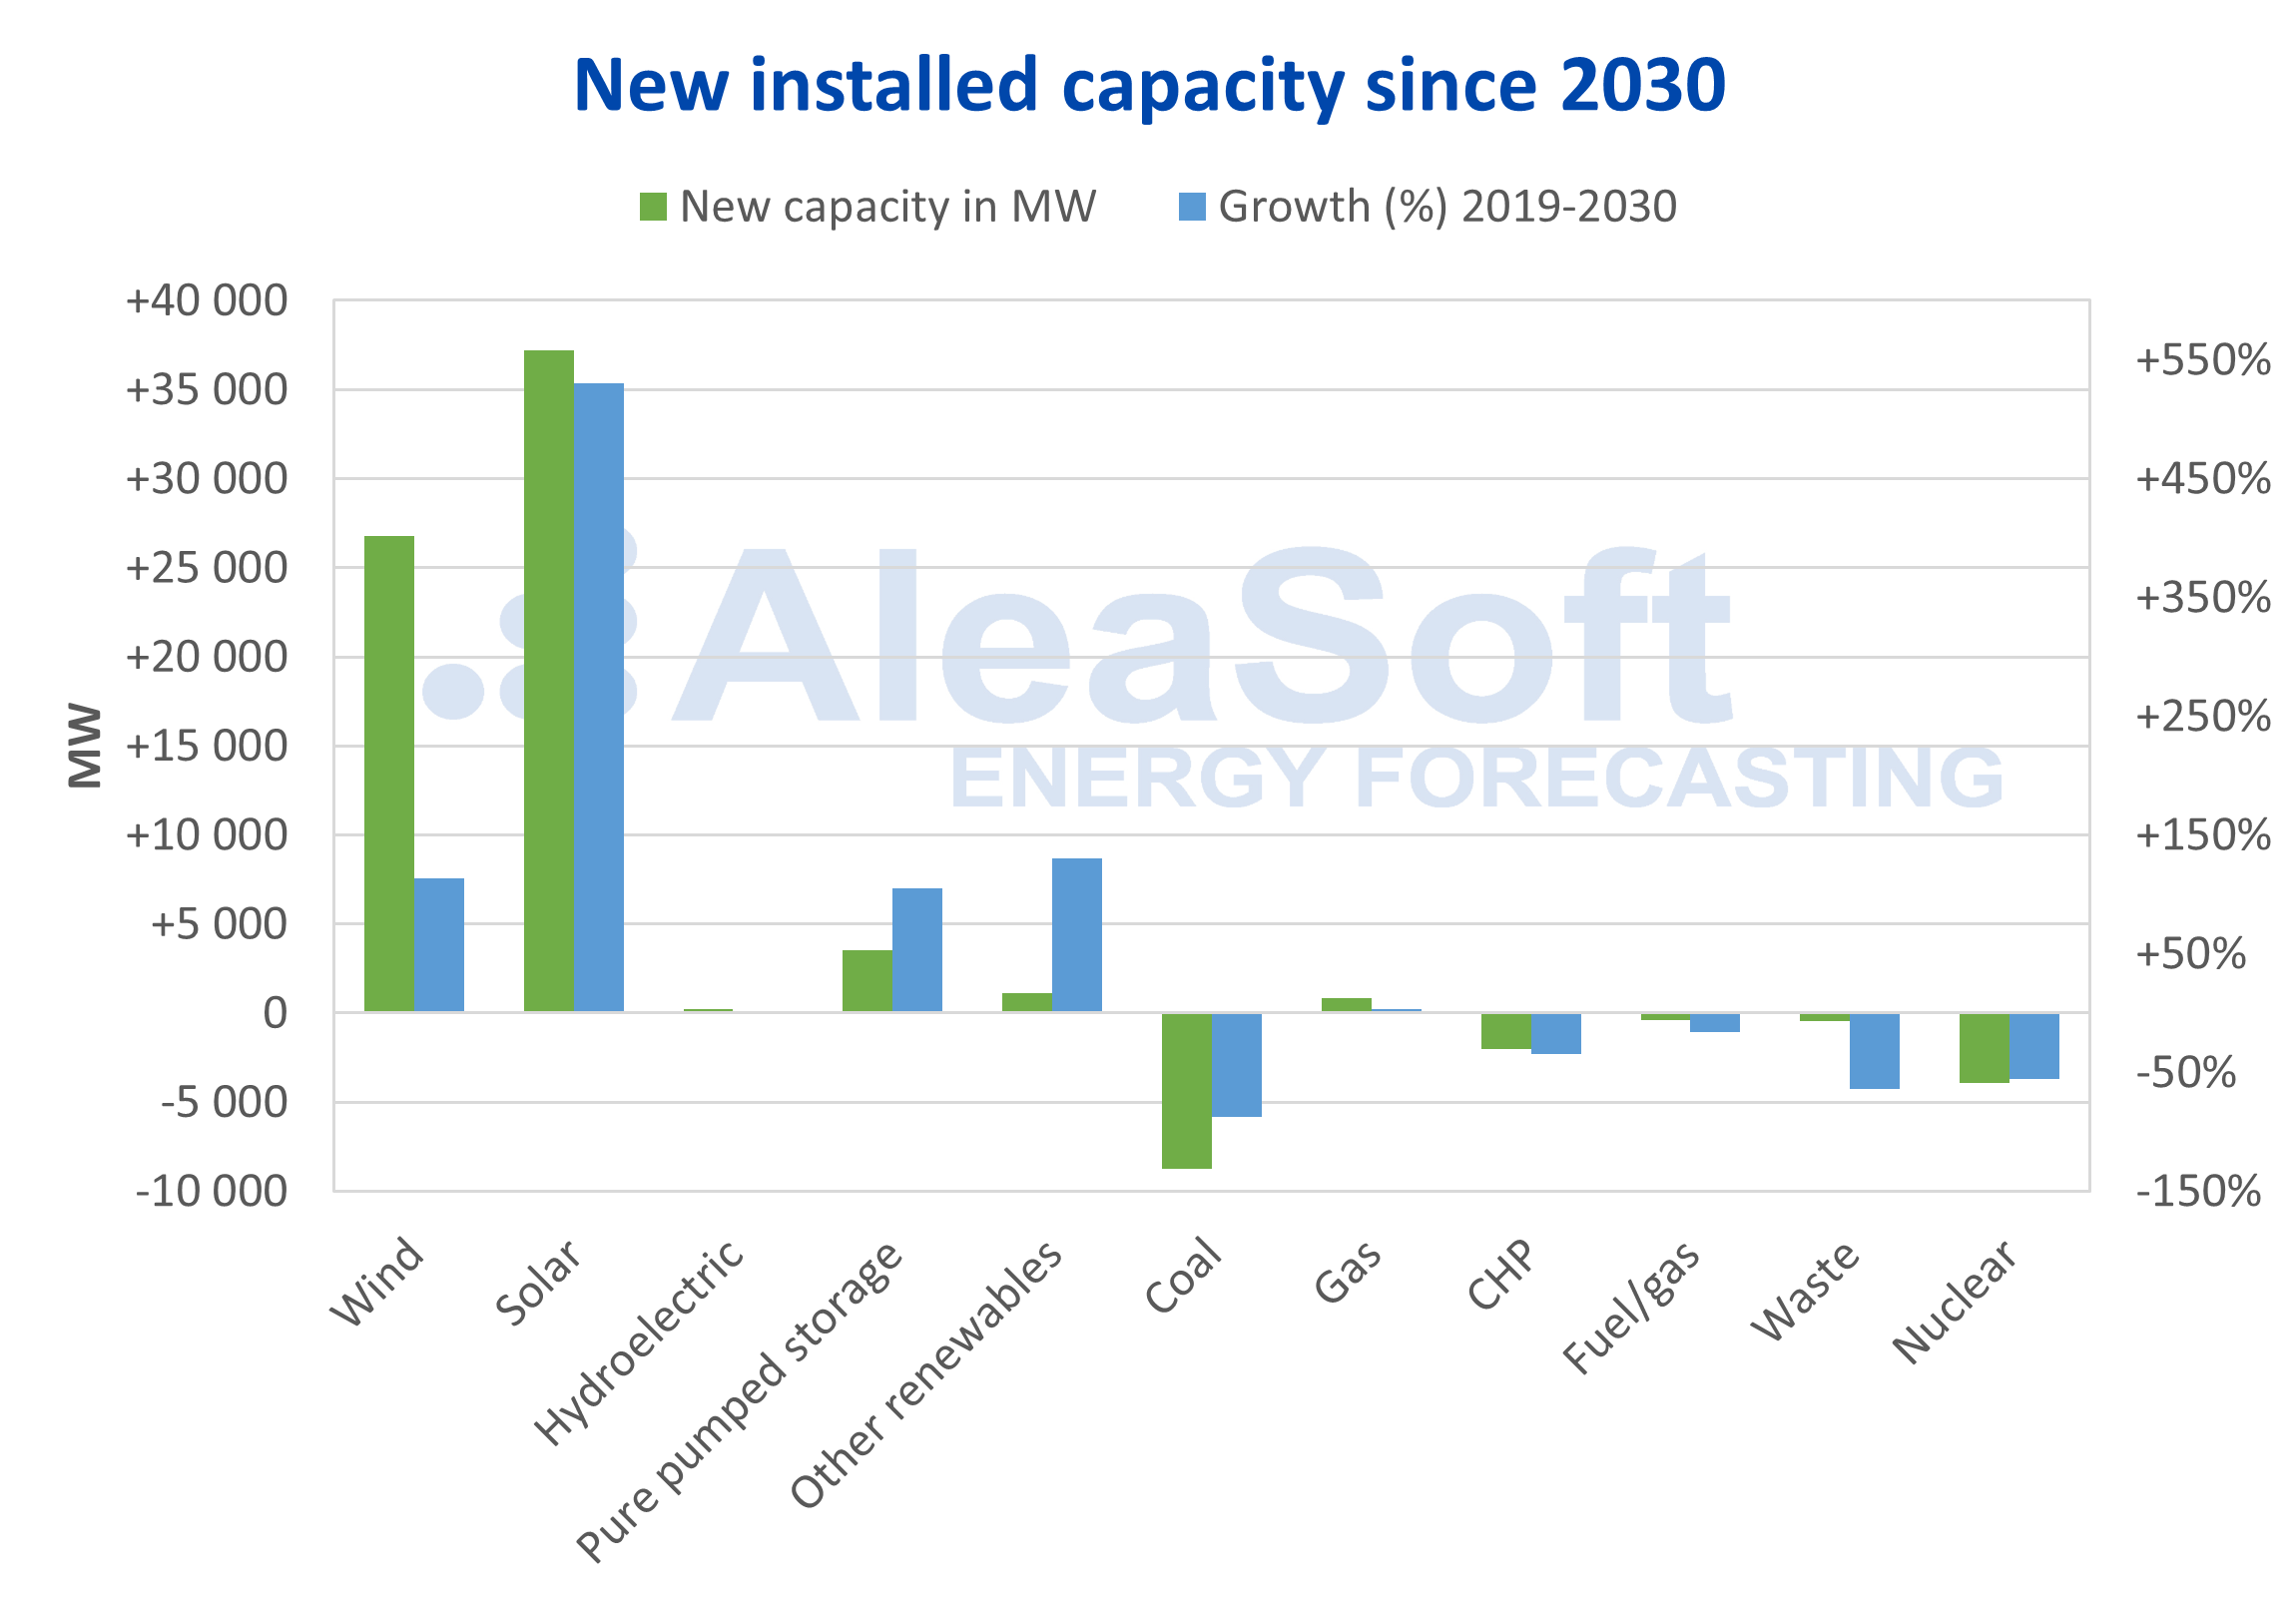 AleaSoft - New electricity capacity 2030